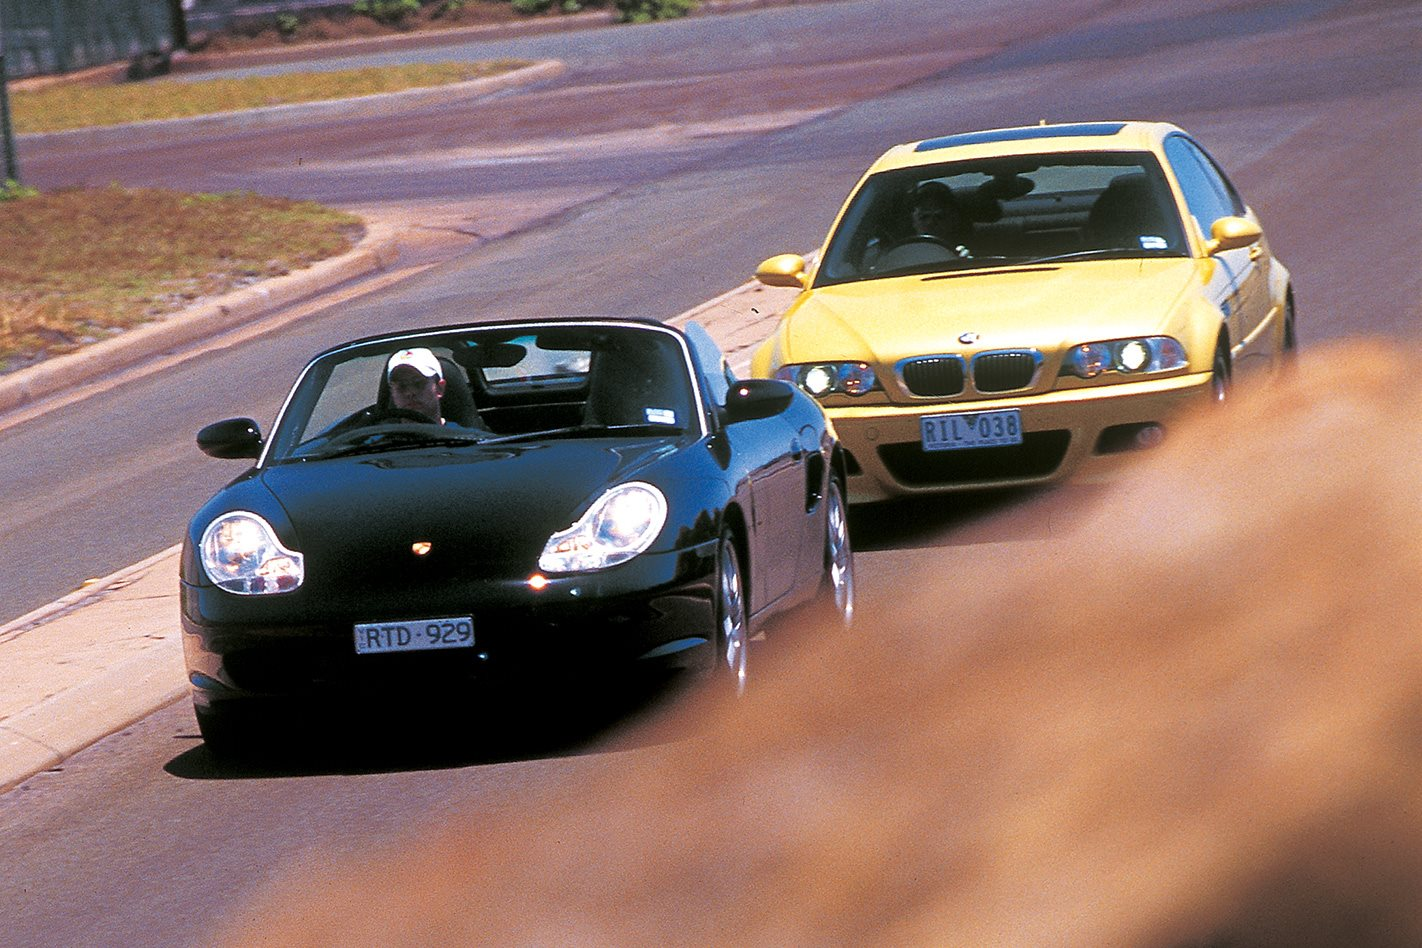 2003 BMW M3 vs 2003 Porsche Boxster S review: Clic MOTOR